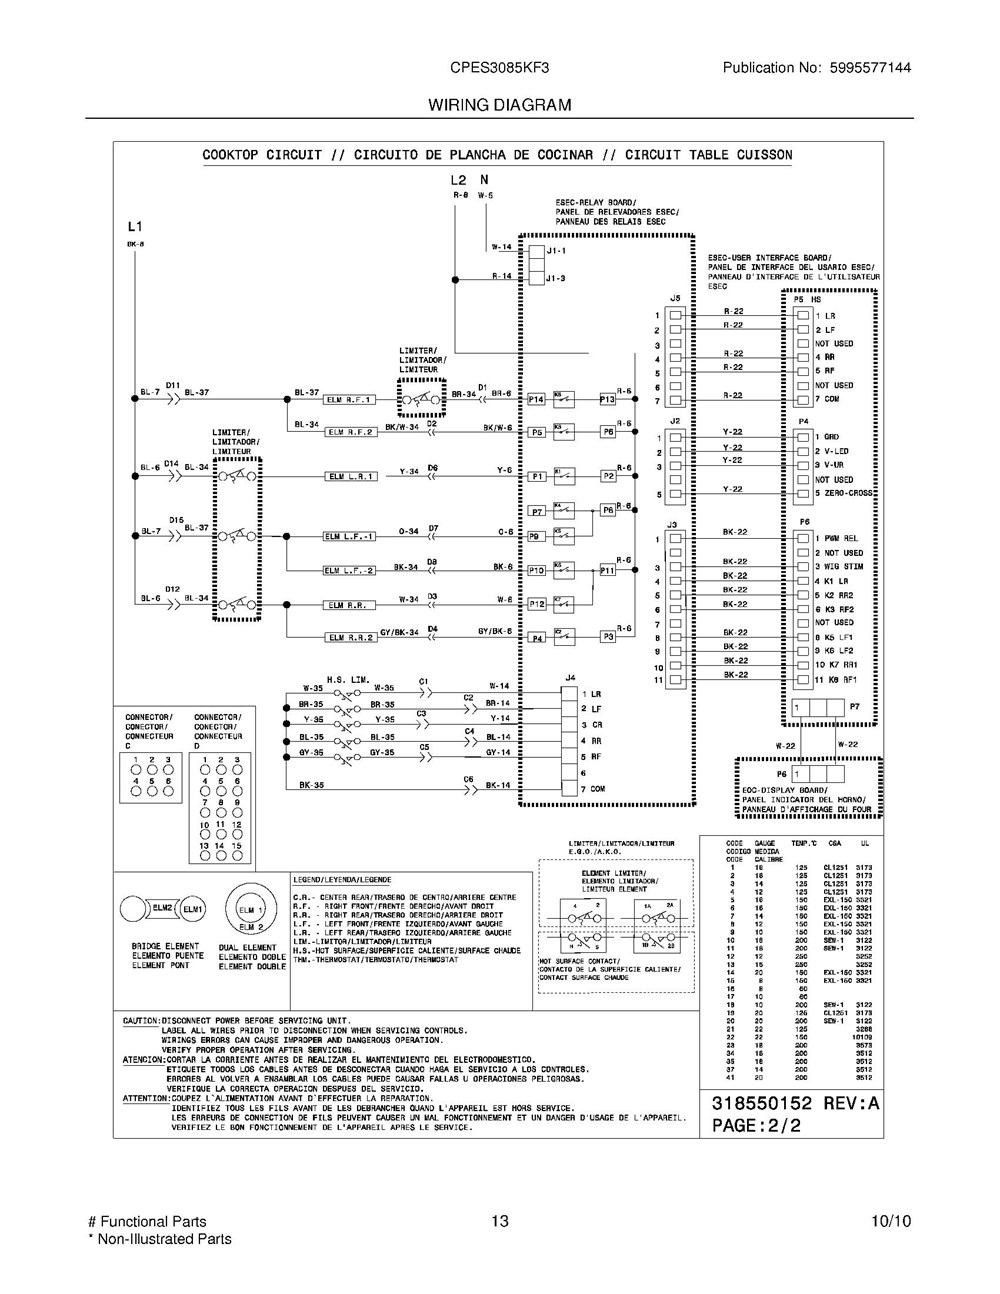 Cpes3085kf3 Frigidaire Company 07top Drawer 09door 01cover 10wiring Diagram 11wiring